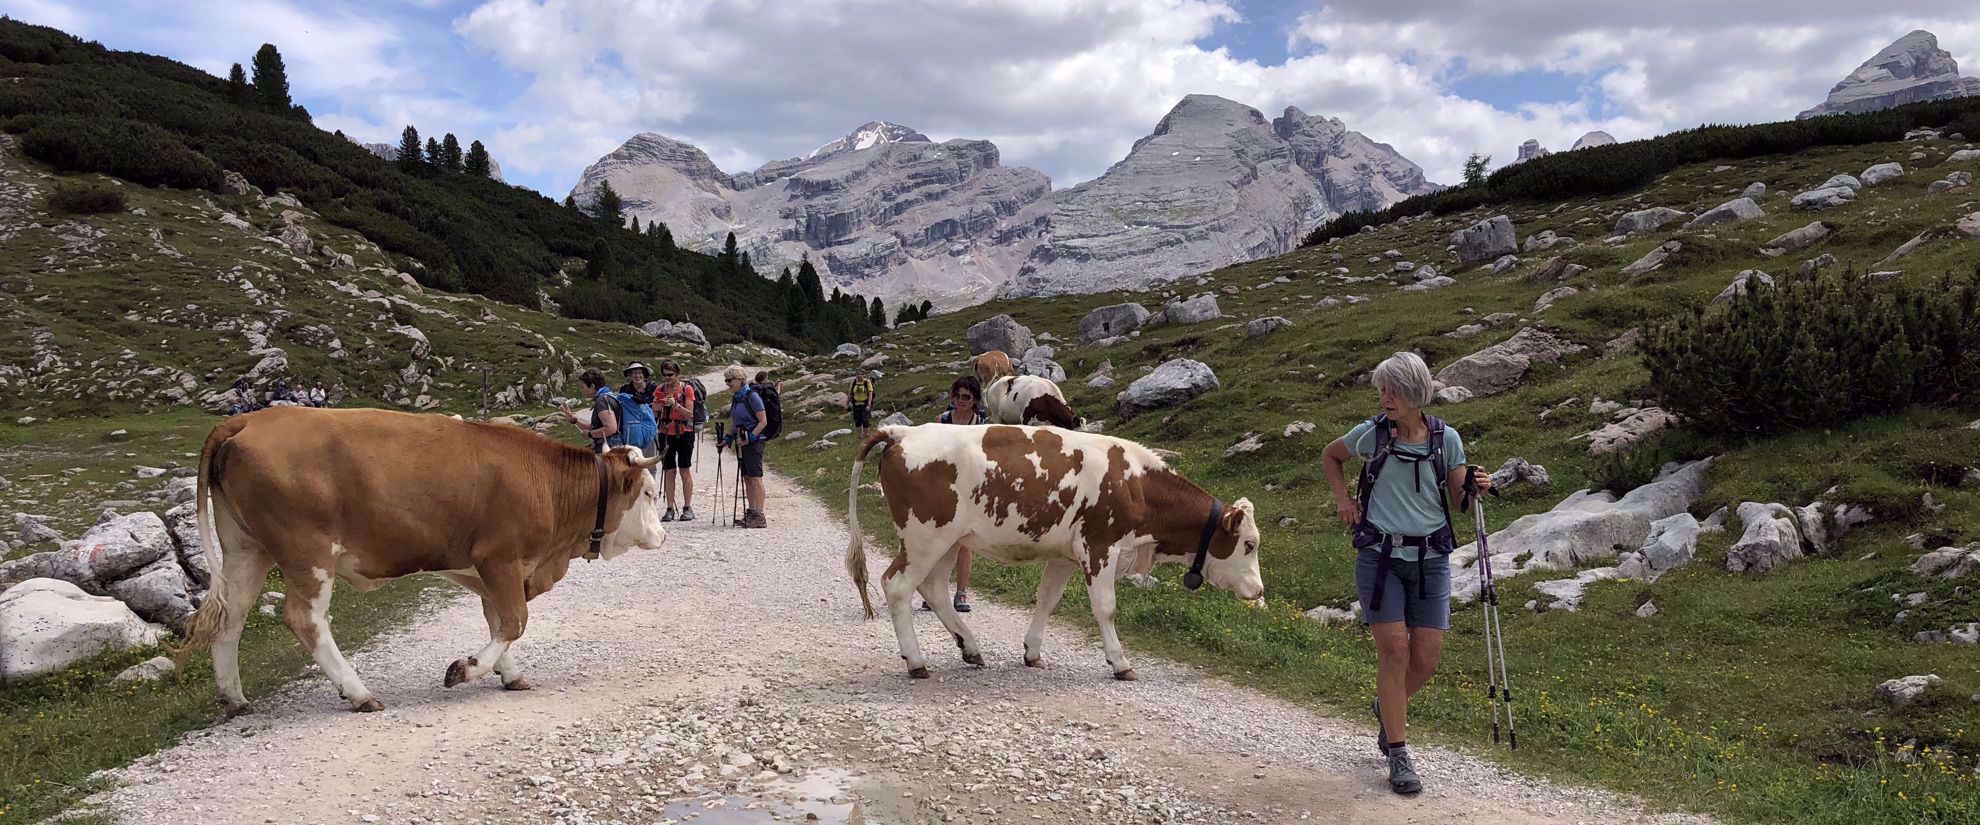 cows in northern italian alps